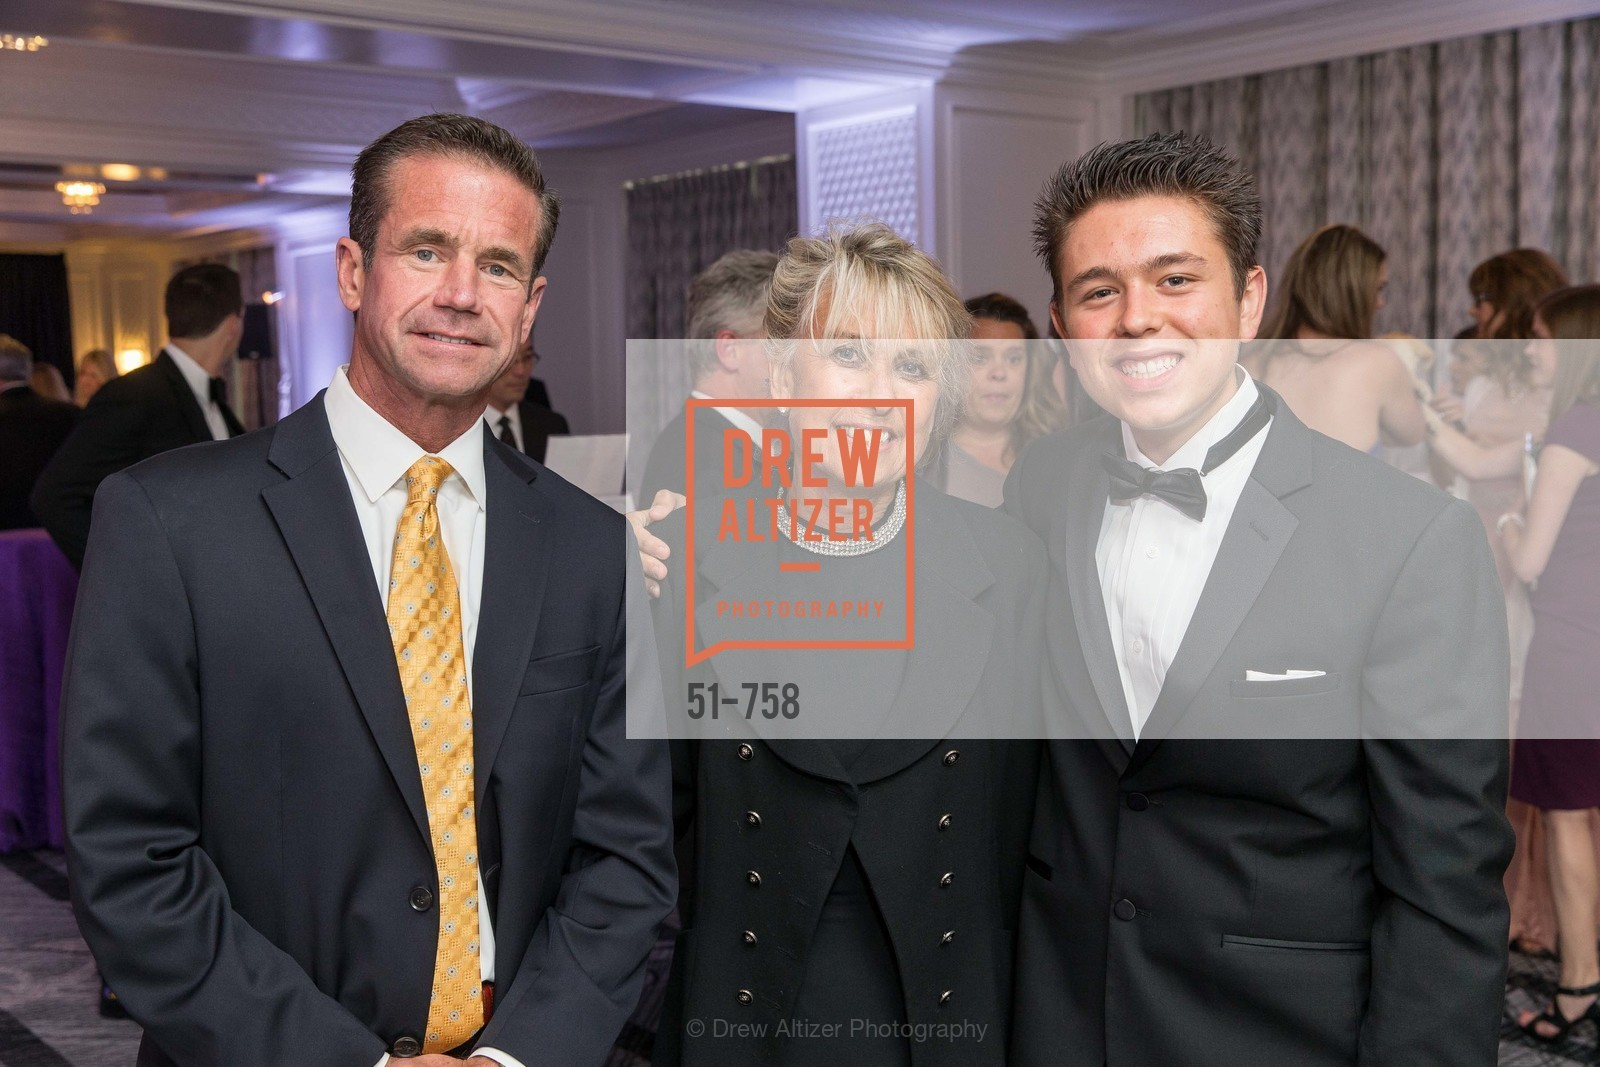 John Isbrandtsen, Wendy Isbrandtsen, Christian Isbrandtsen, JUVENILE DIABETES RESEARCH FOUNDATION  Hope Gala, US, May 30th, 2015,Drew Altizer, Drew Altizer Photography, full-service agency, private events, San Francisco photographer, photographer california